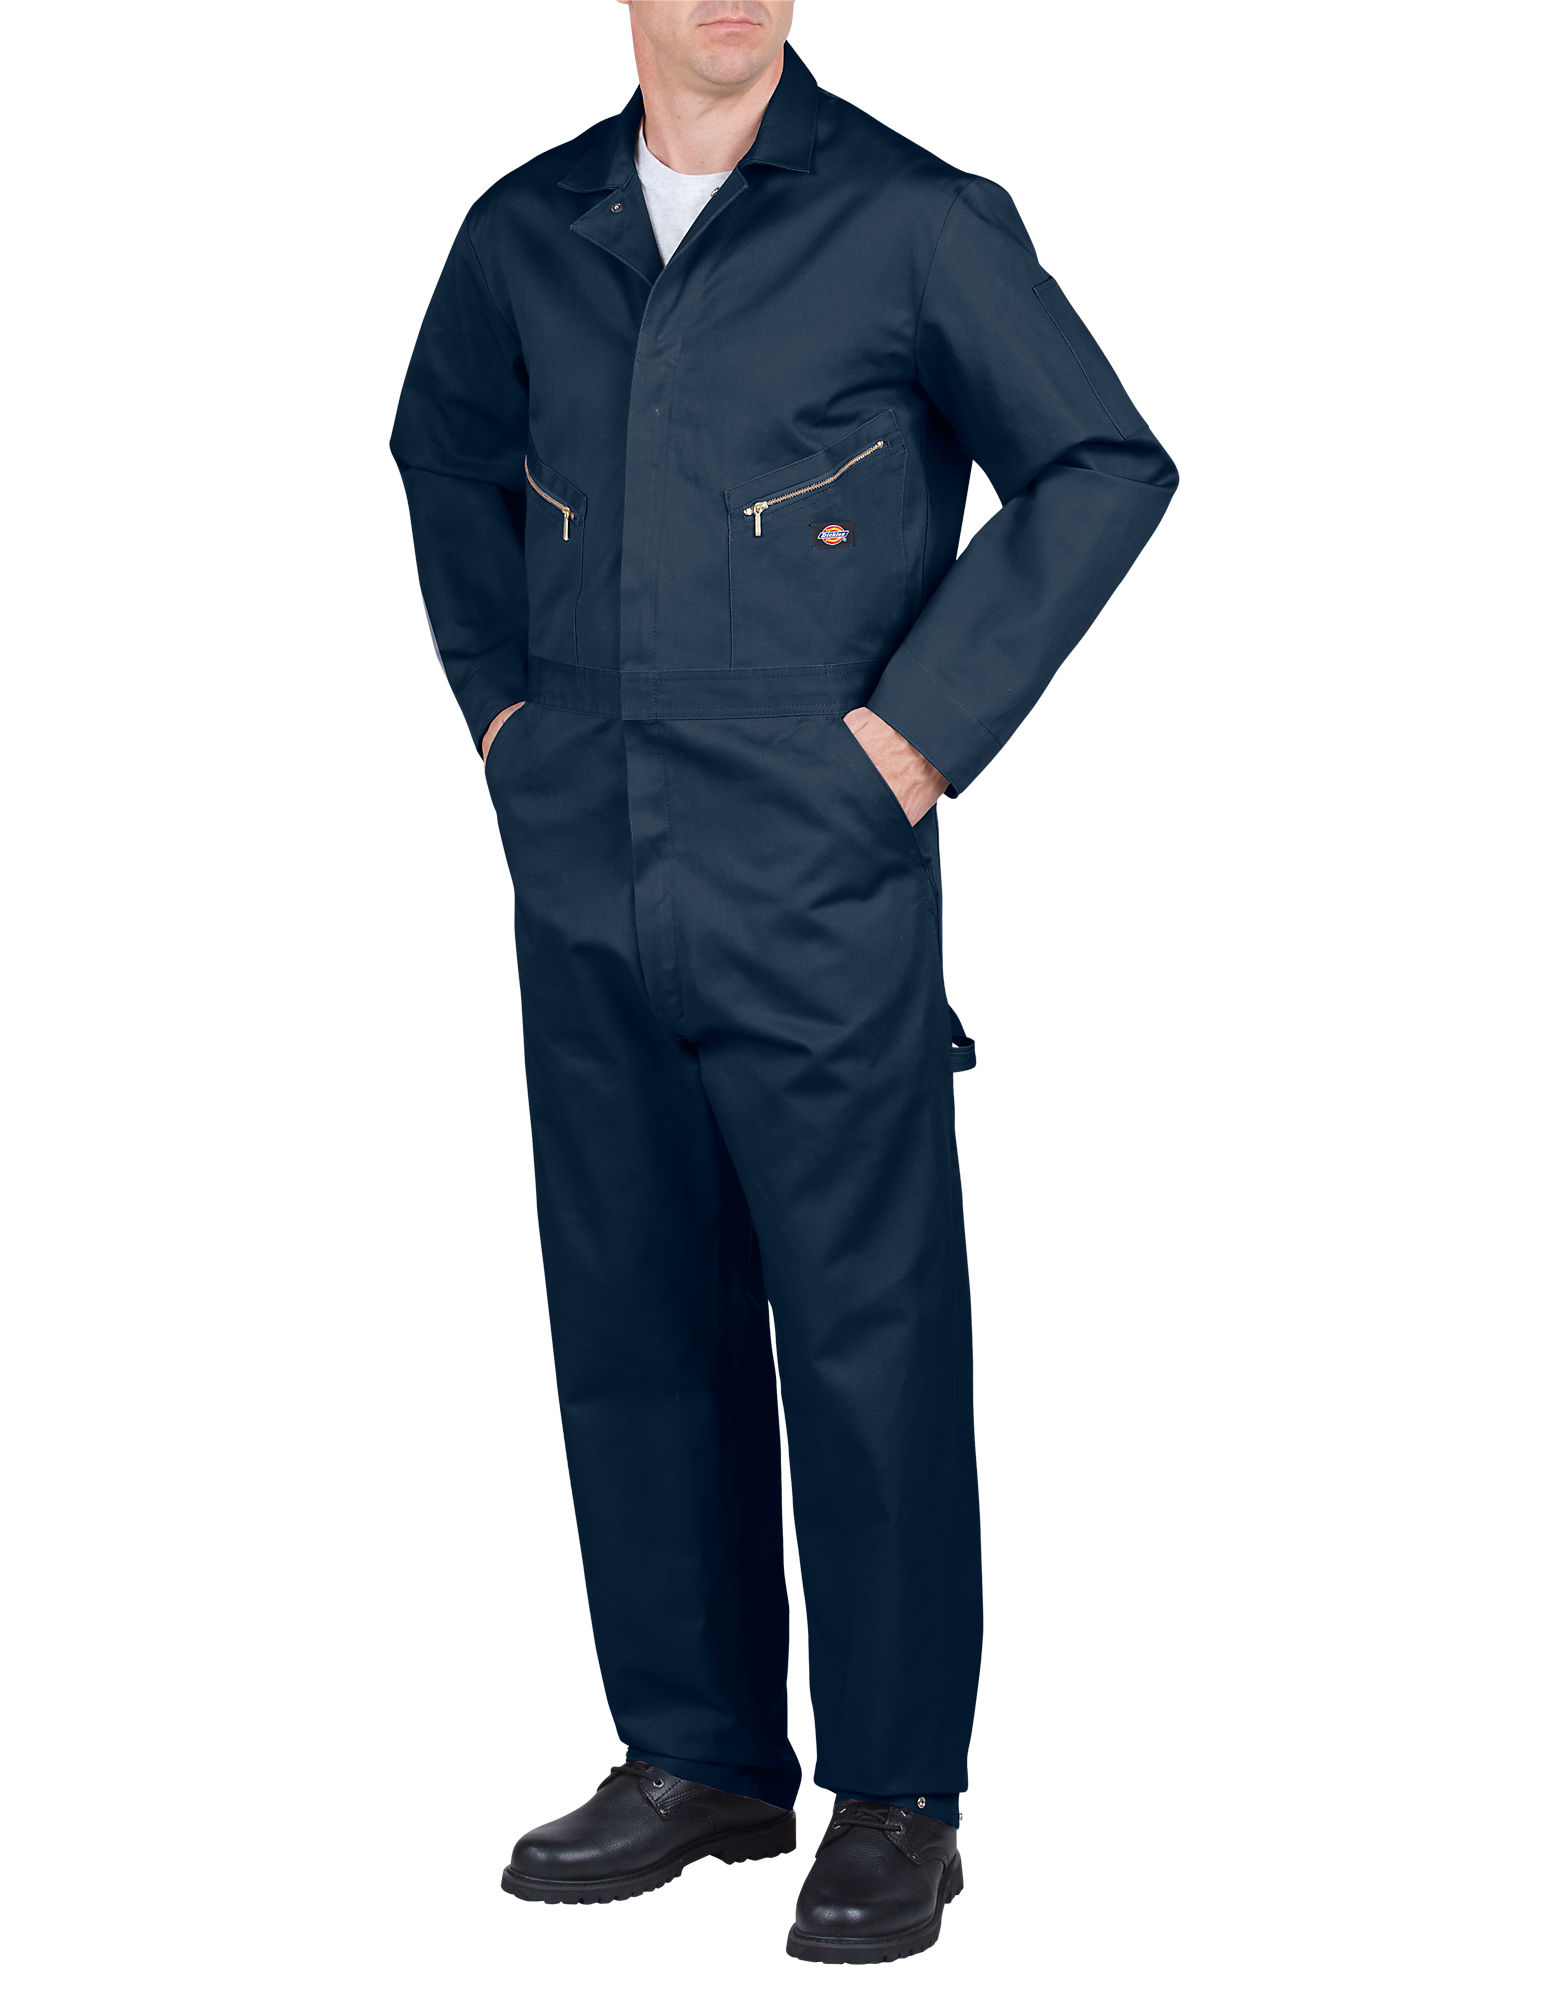 Dickies Mens Deluxe Cotton Coverall, Dark Navy 3X TL by Dickies